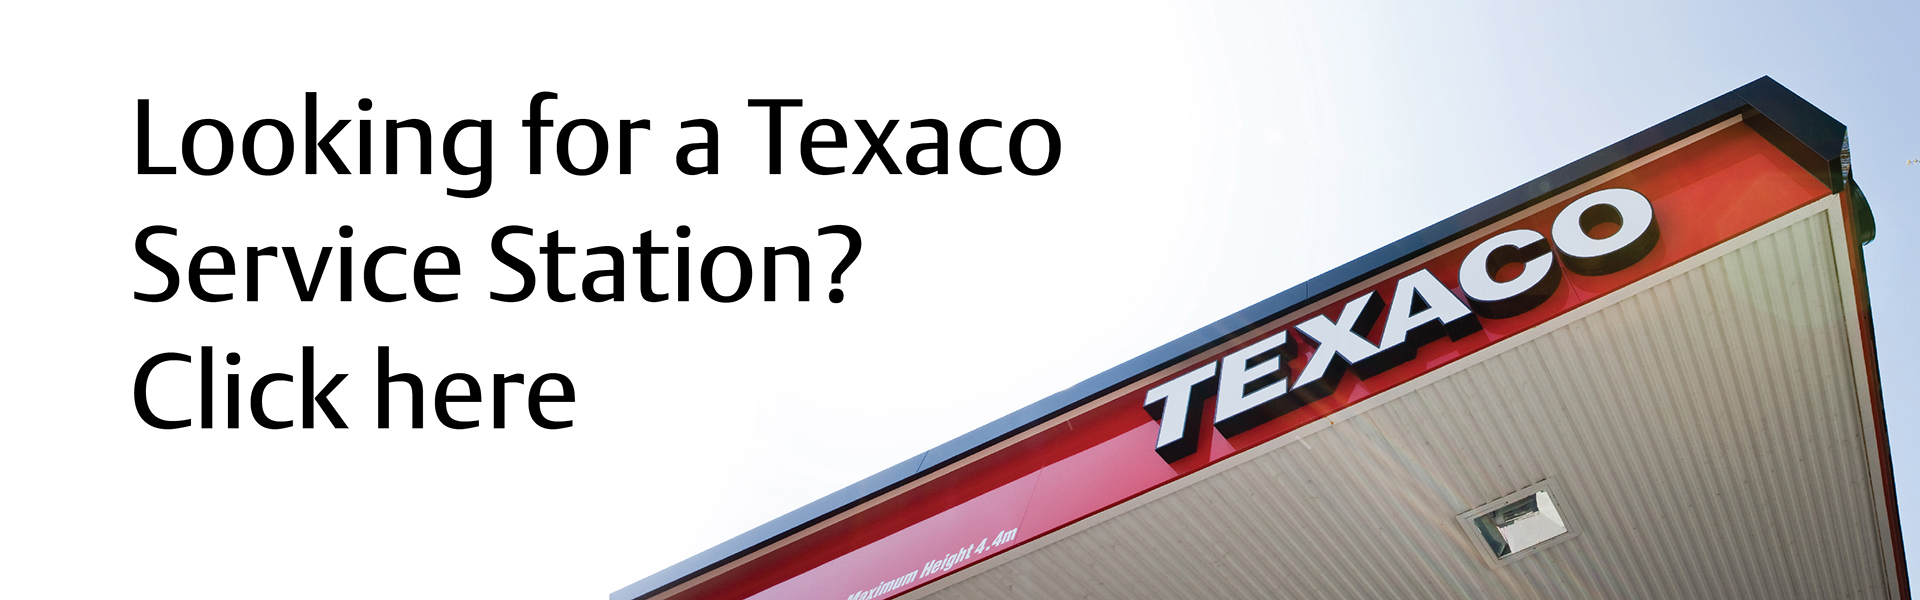 Are you looking for a Texaco Service Station?